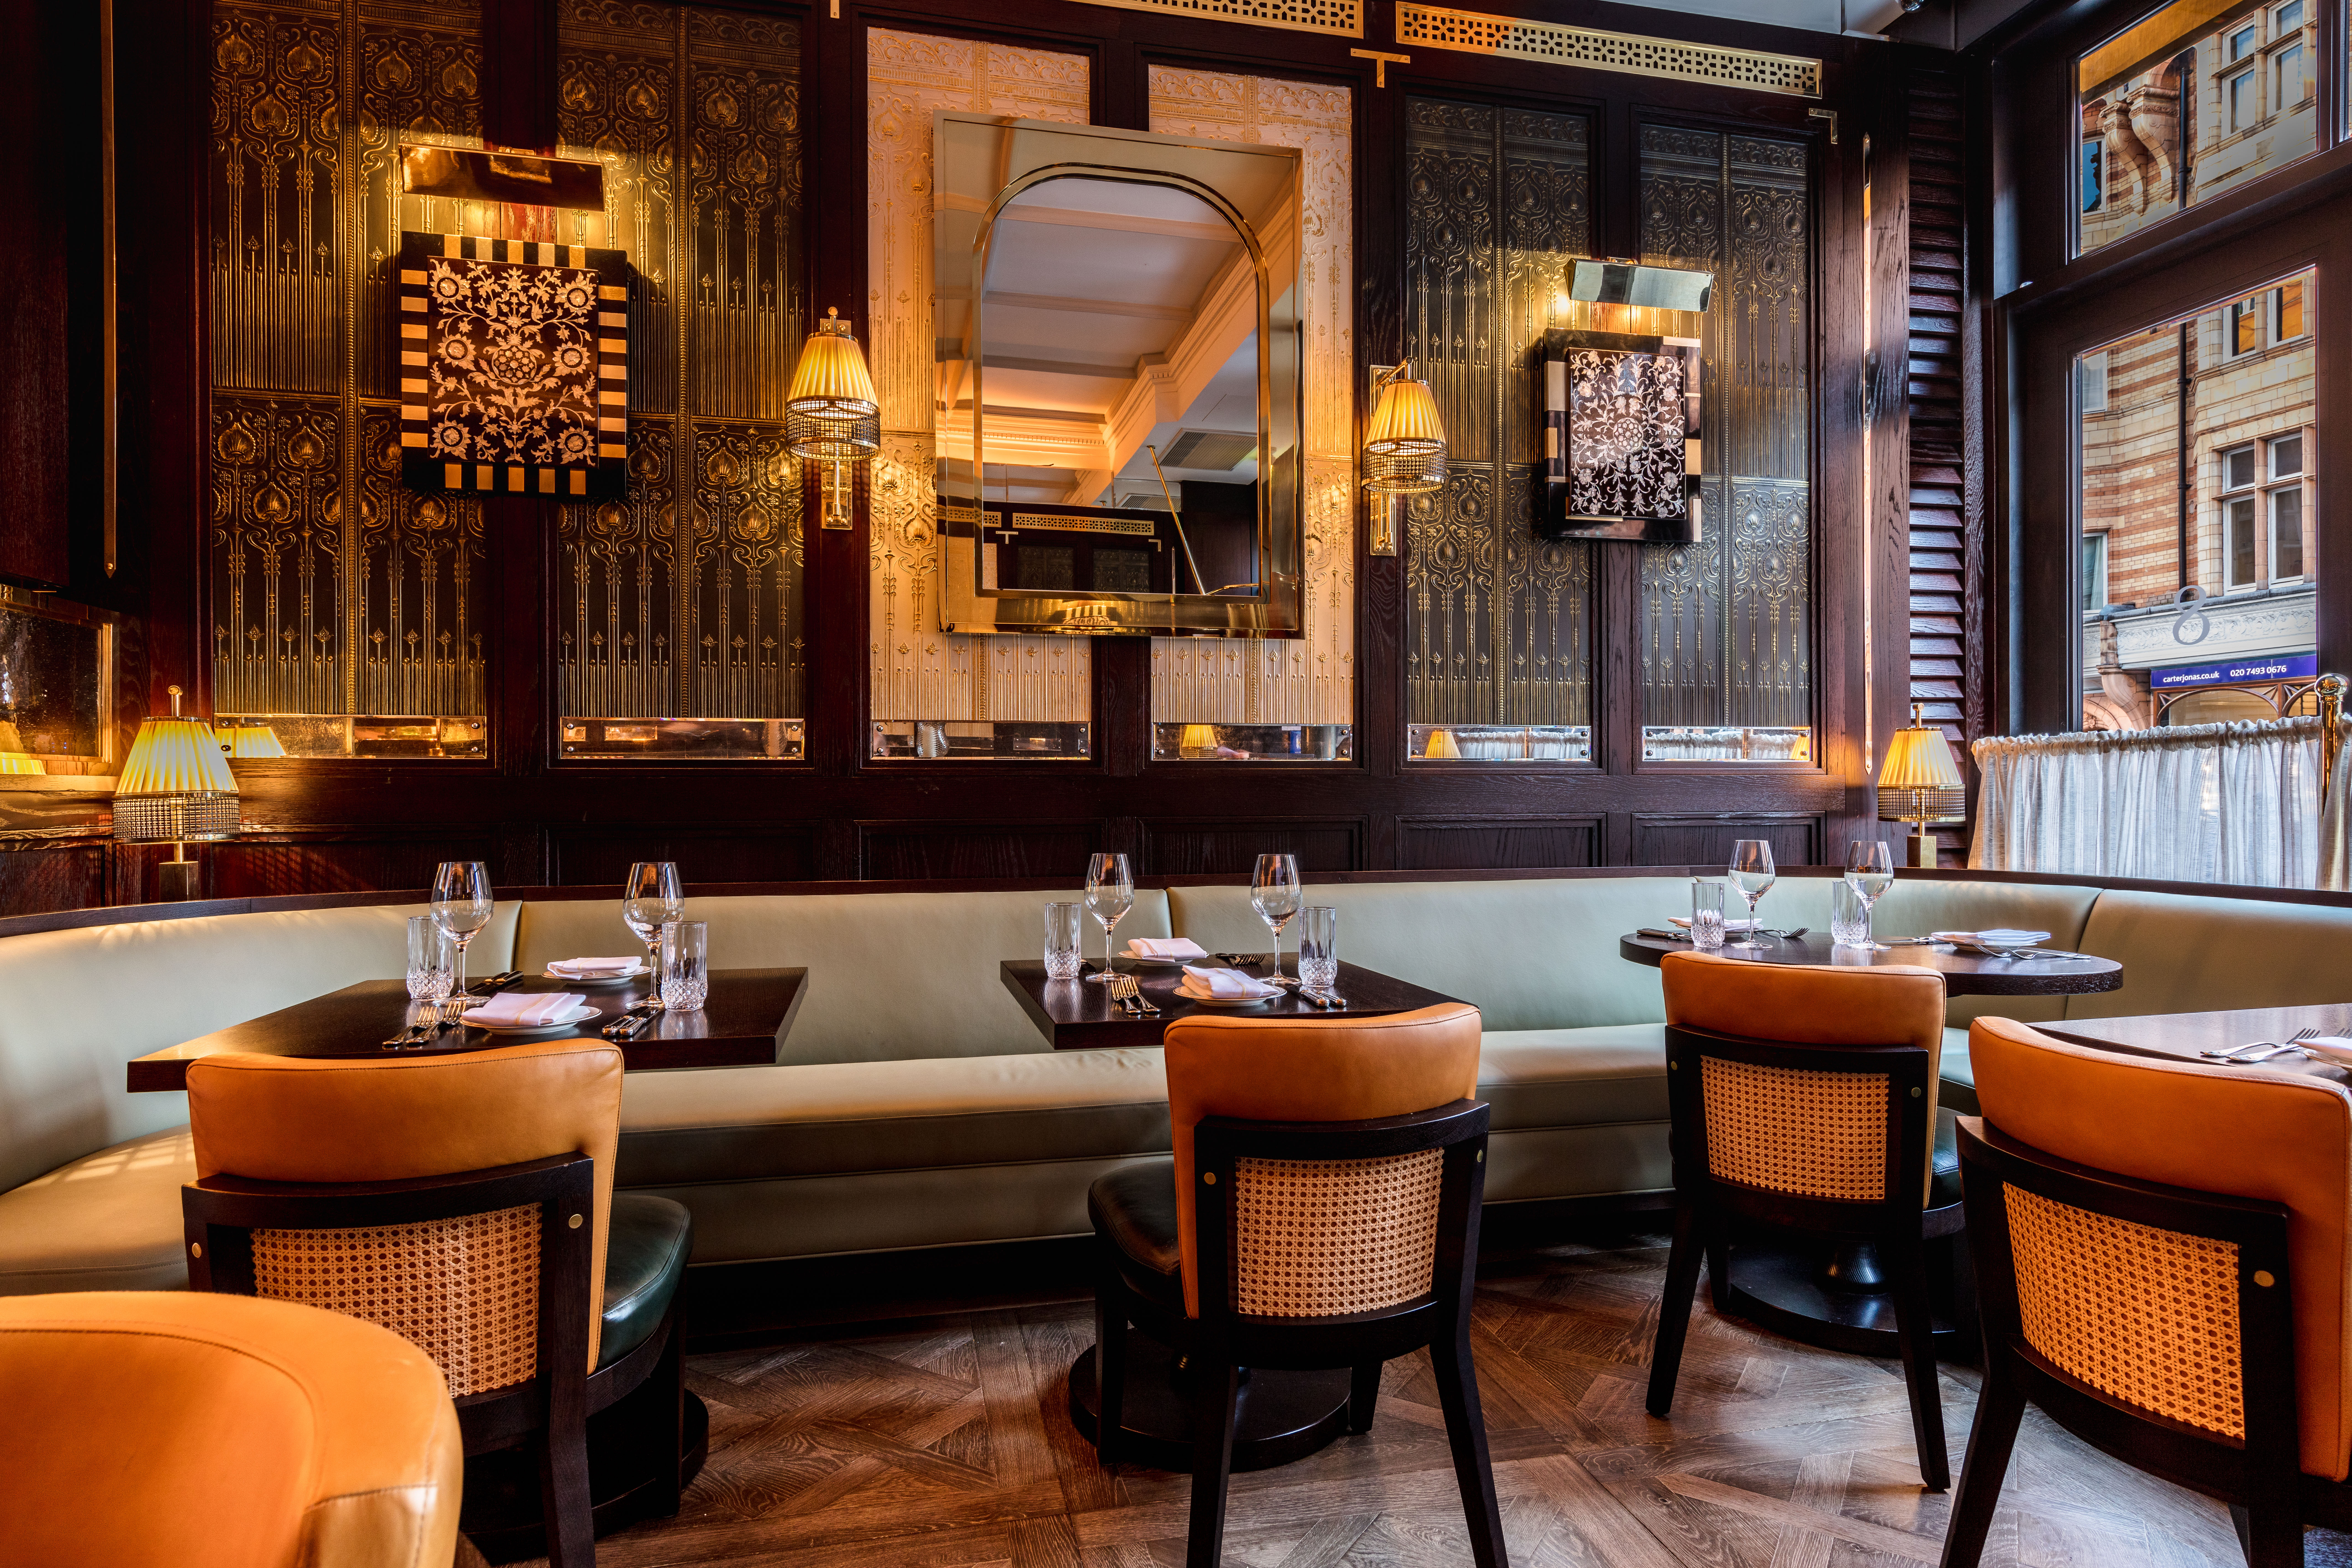 The Best Indian Restaurants In Central London London The Infatuation